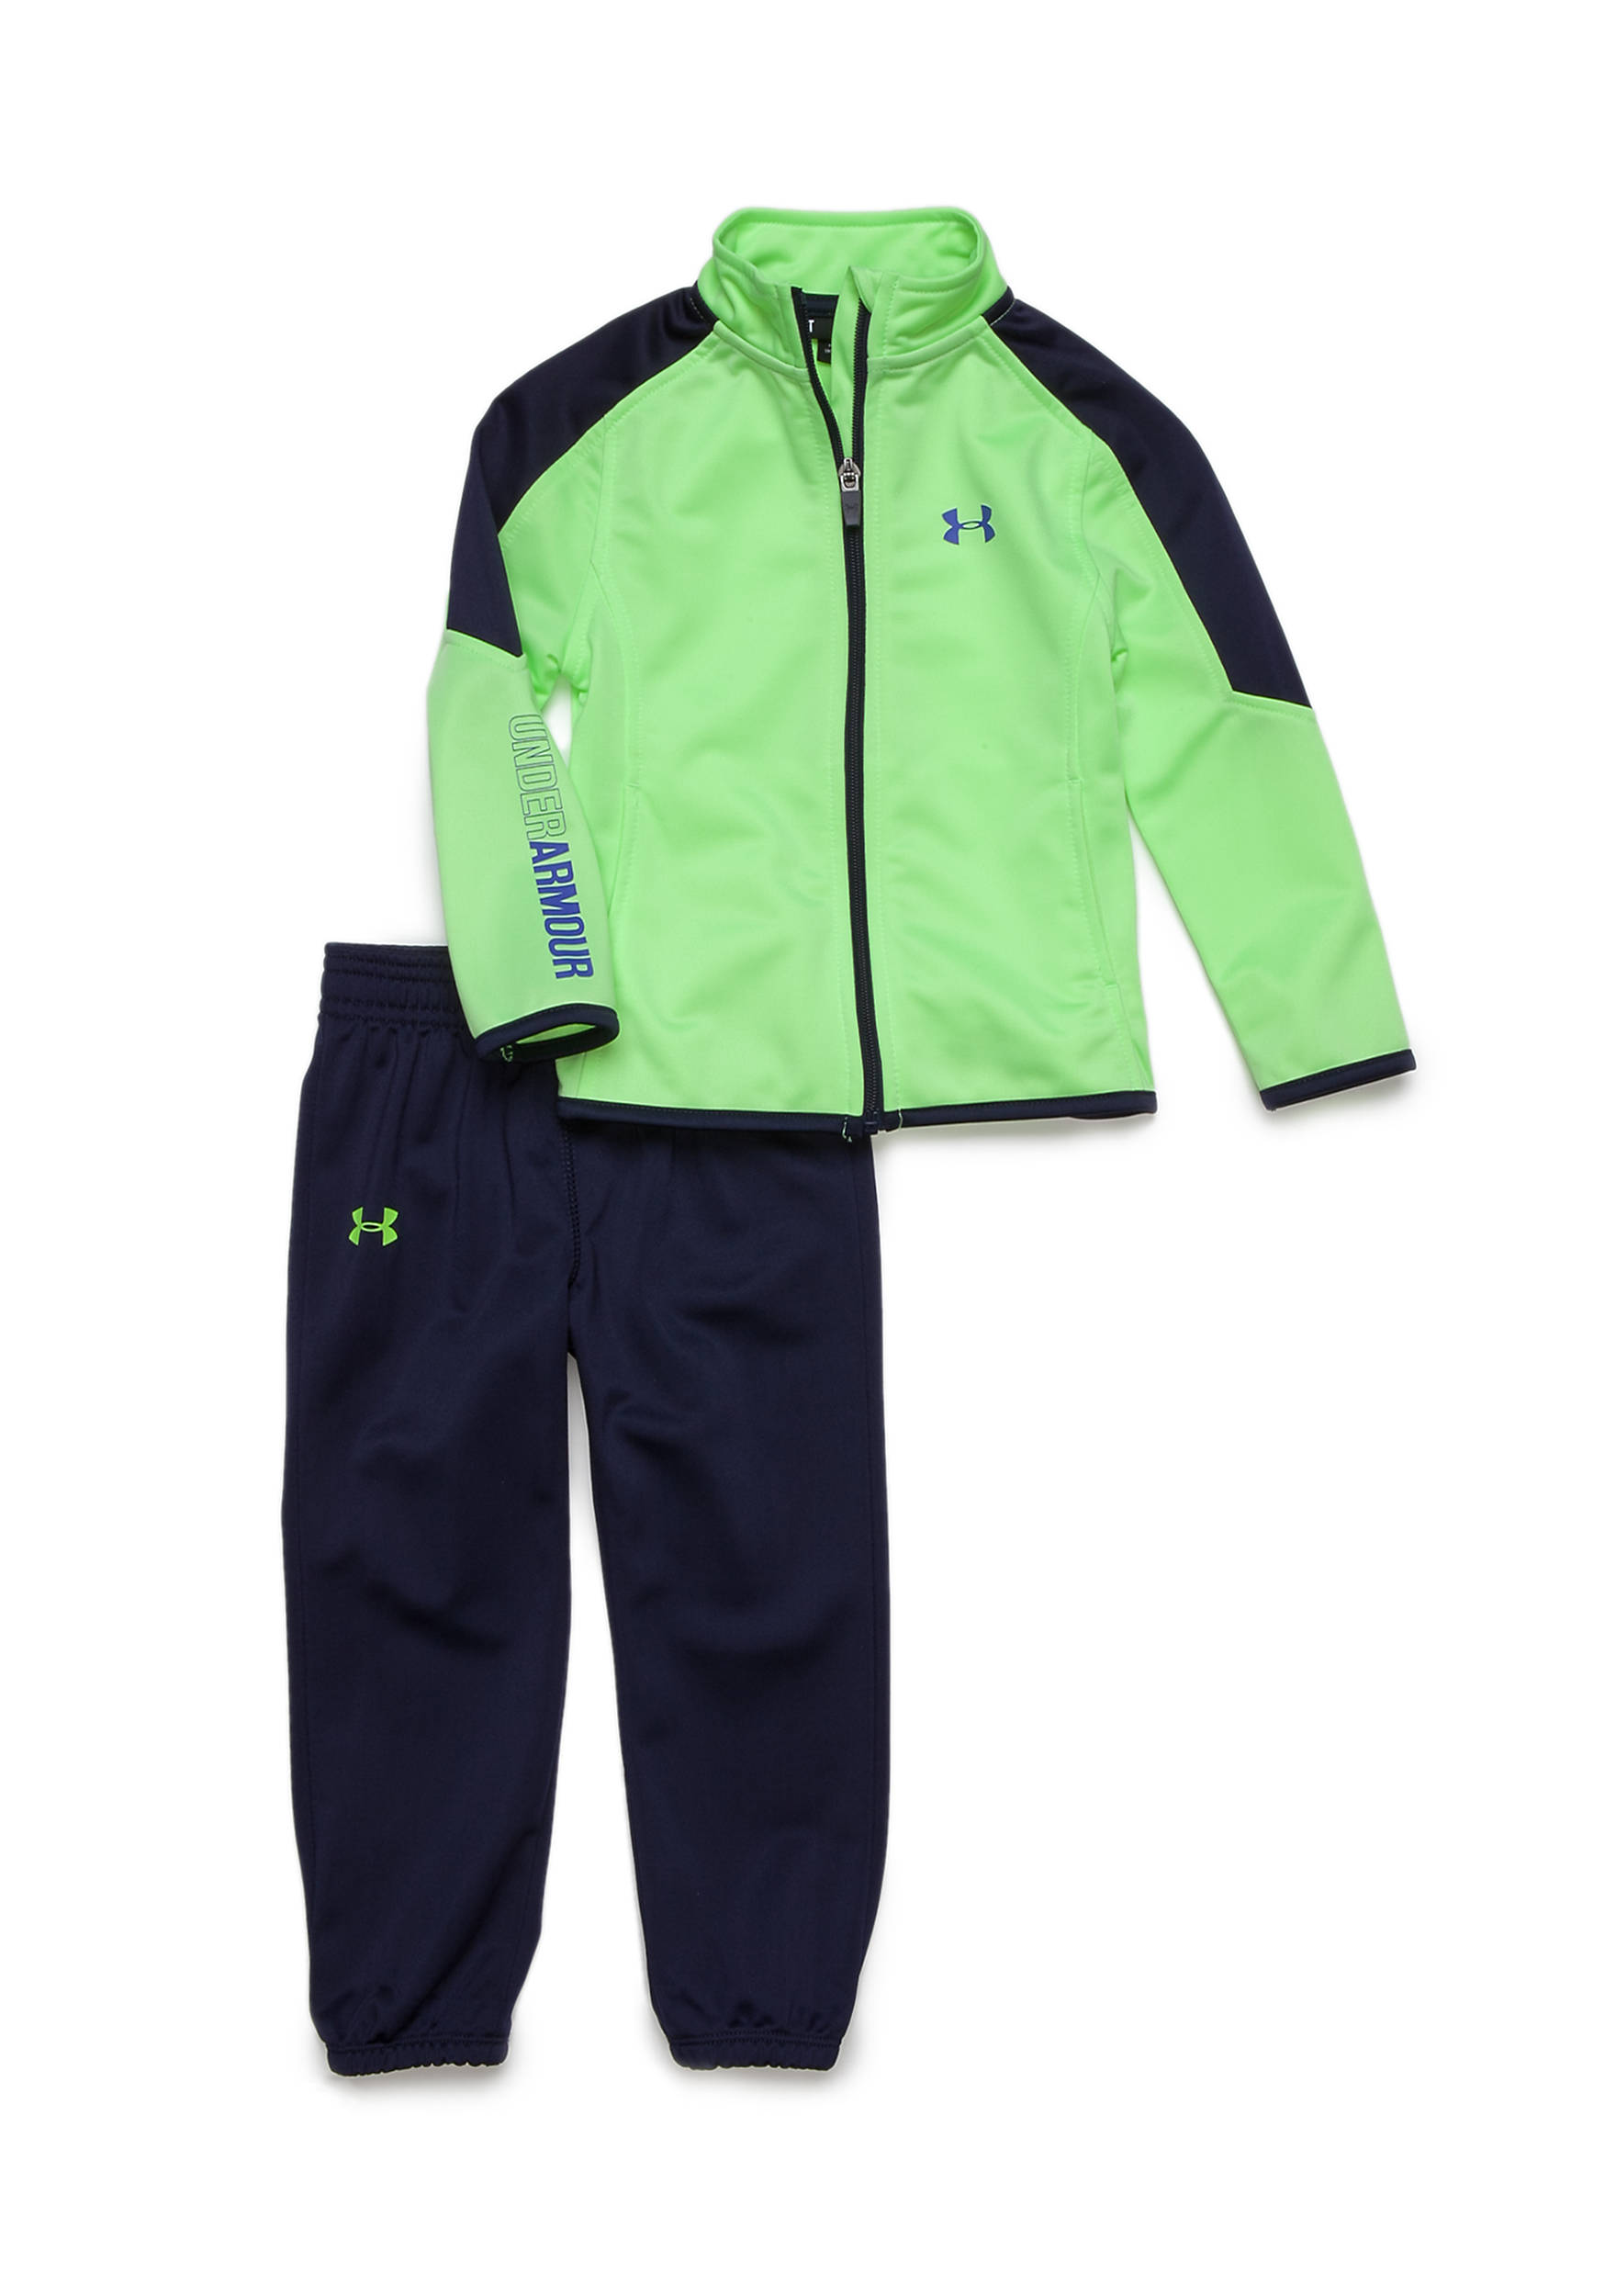 d38dac47e9 Under Armour® 2-Piece Track Jacket and Pants Set Girls 4-6x